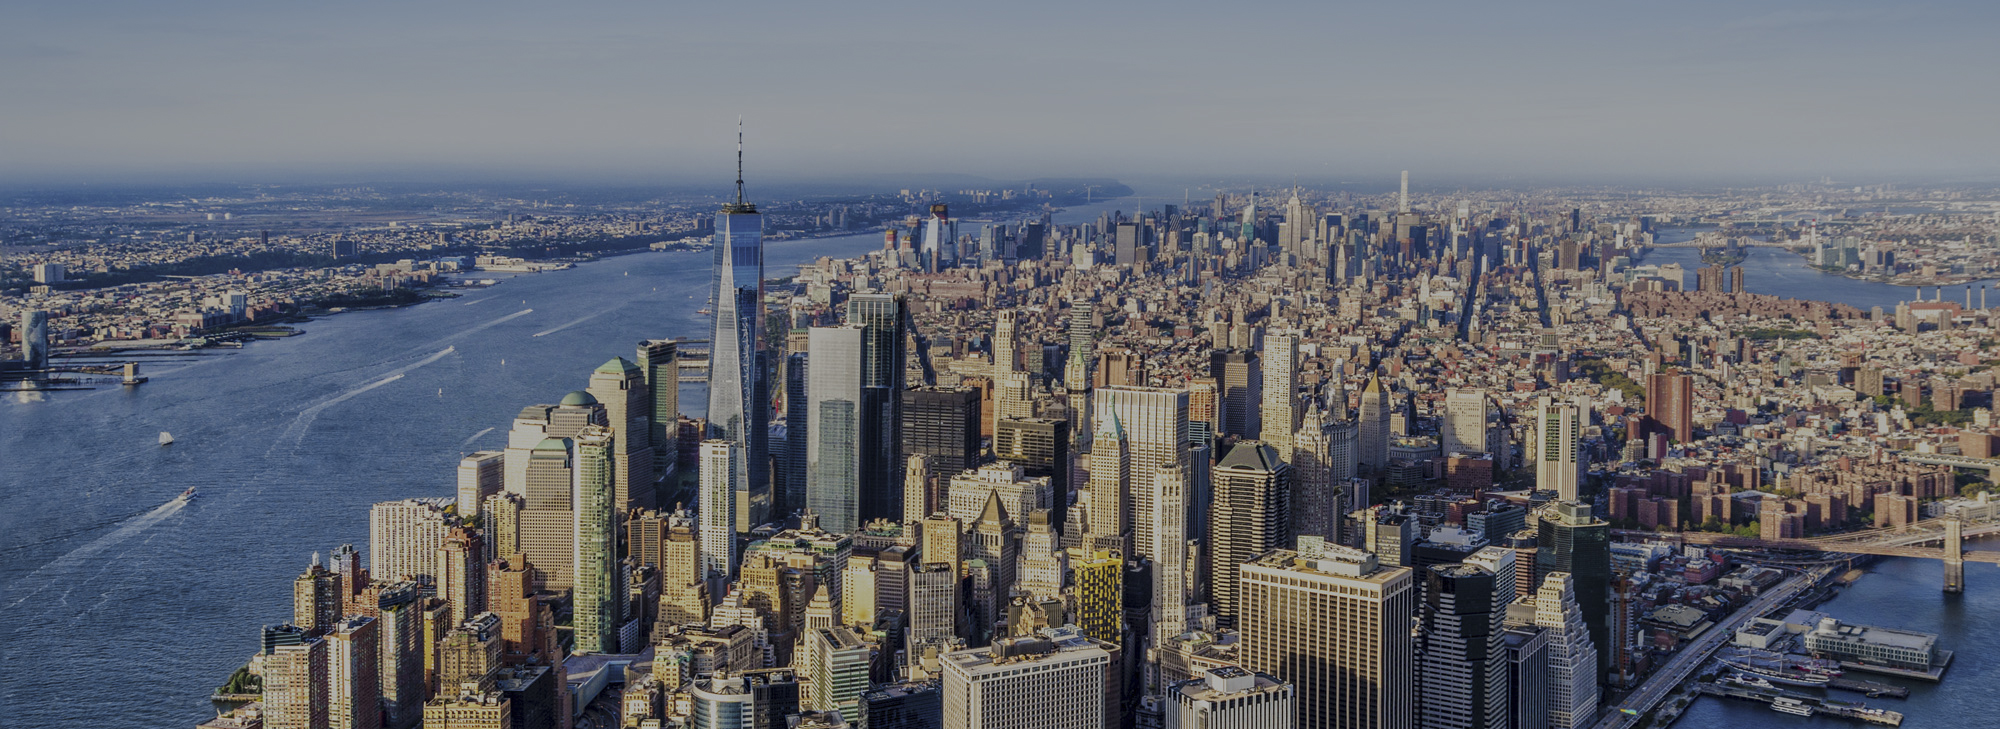 new-york-asset-protection-header